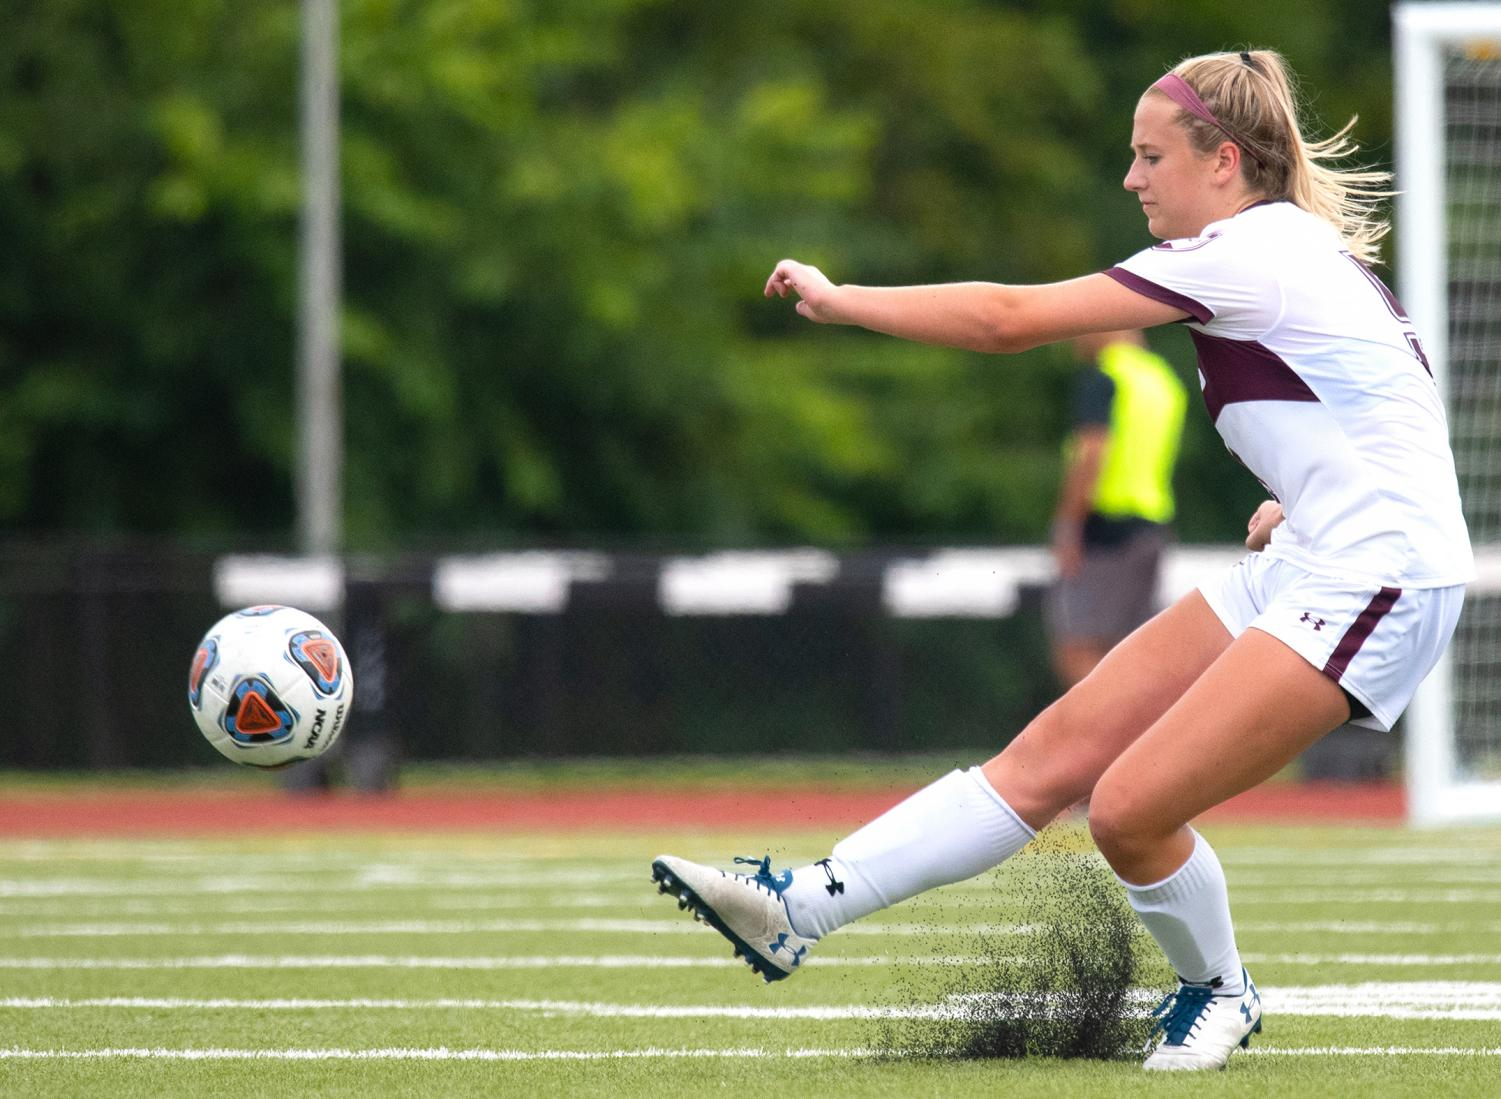 Christy+Murauskis%2C+of+Palantine%2C+kicks+the+ball+during+the+SIU+vs.+IUPUI+game+on+Sunday%2C+Sept.+1%2C+2019%2C+in+Carbondale.